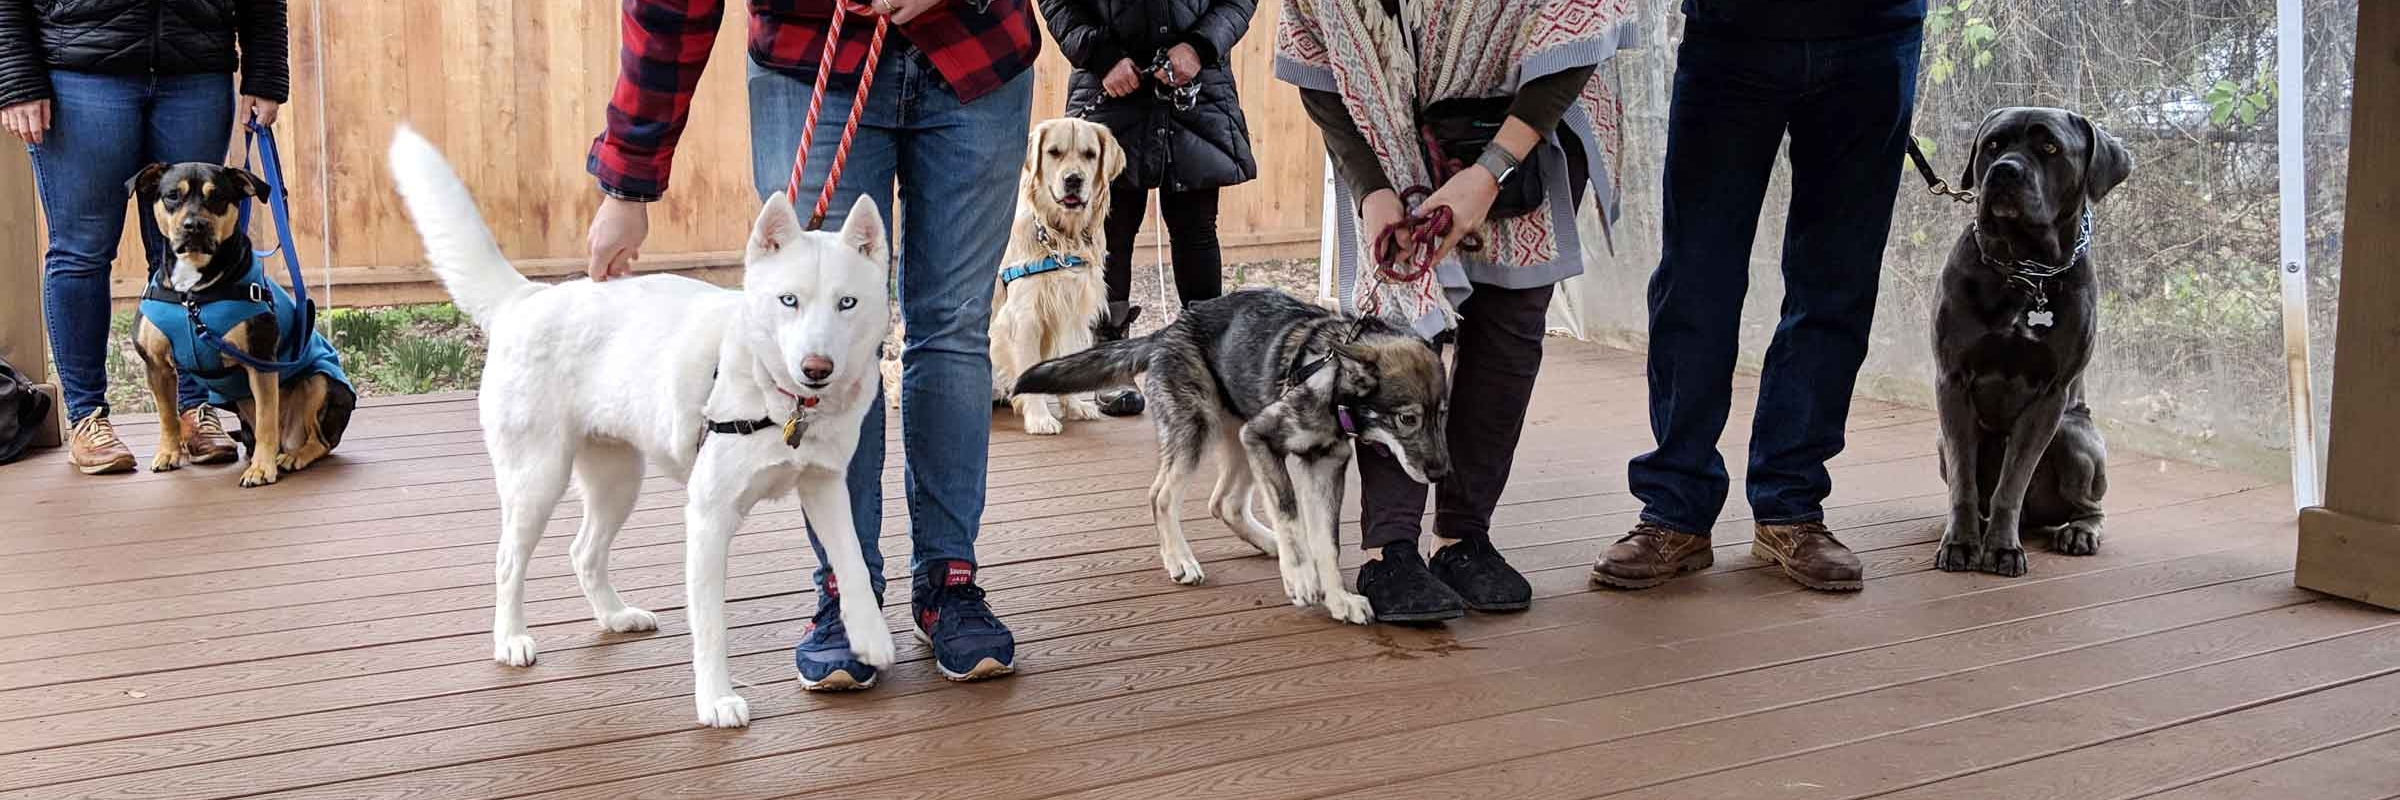 Dog training class held at Tré Bone